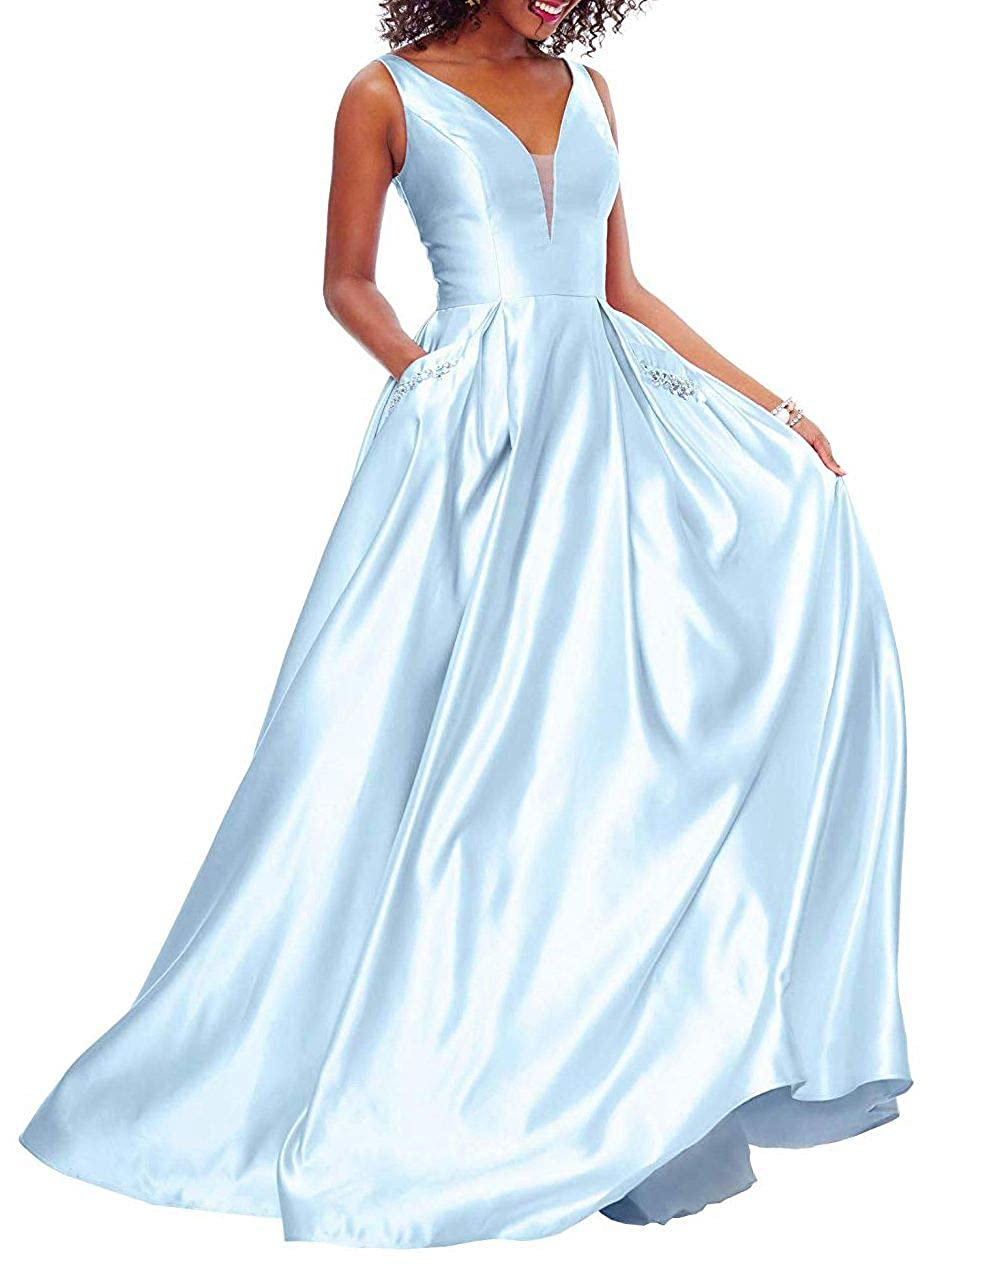 Light bluee Yuki Isabelle Women's V Neck Prom Dresses A Line Beaded Satin Long Formal Evening Gown with Pockets